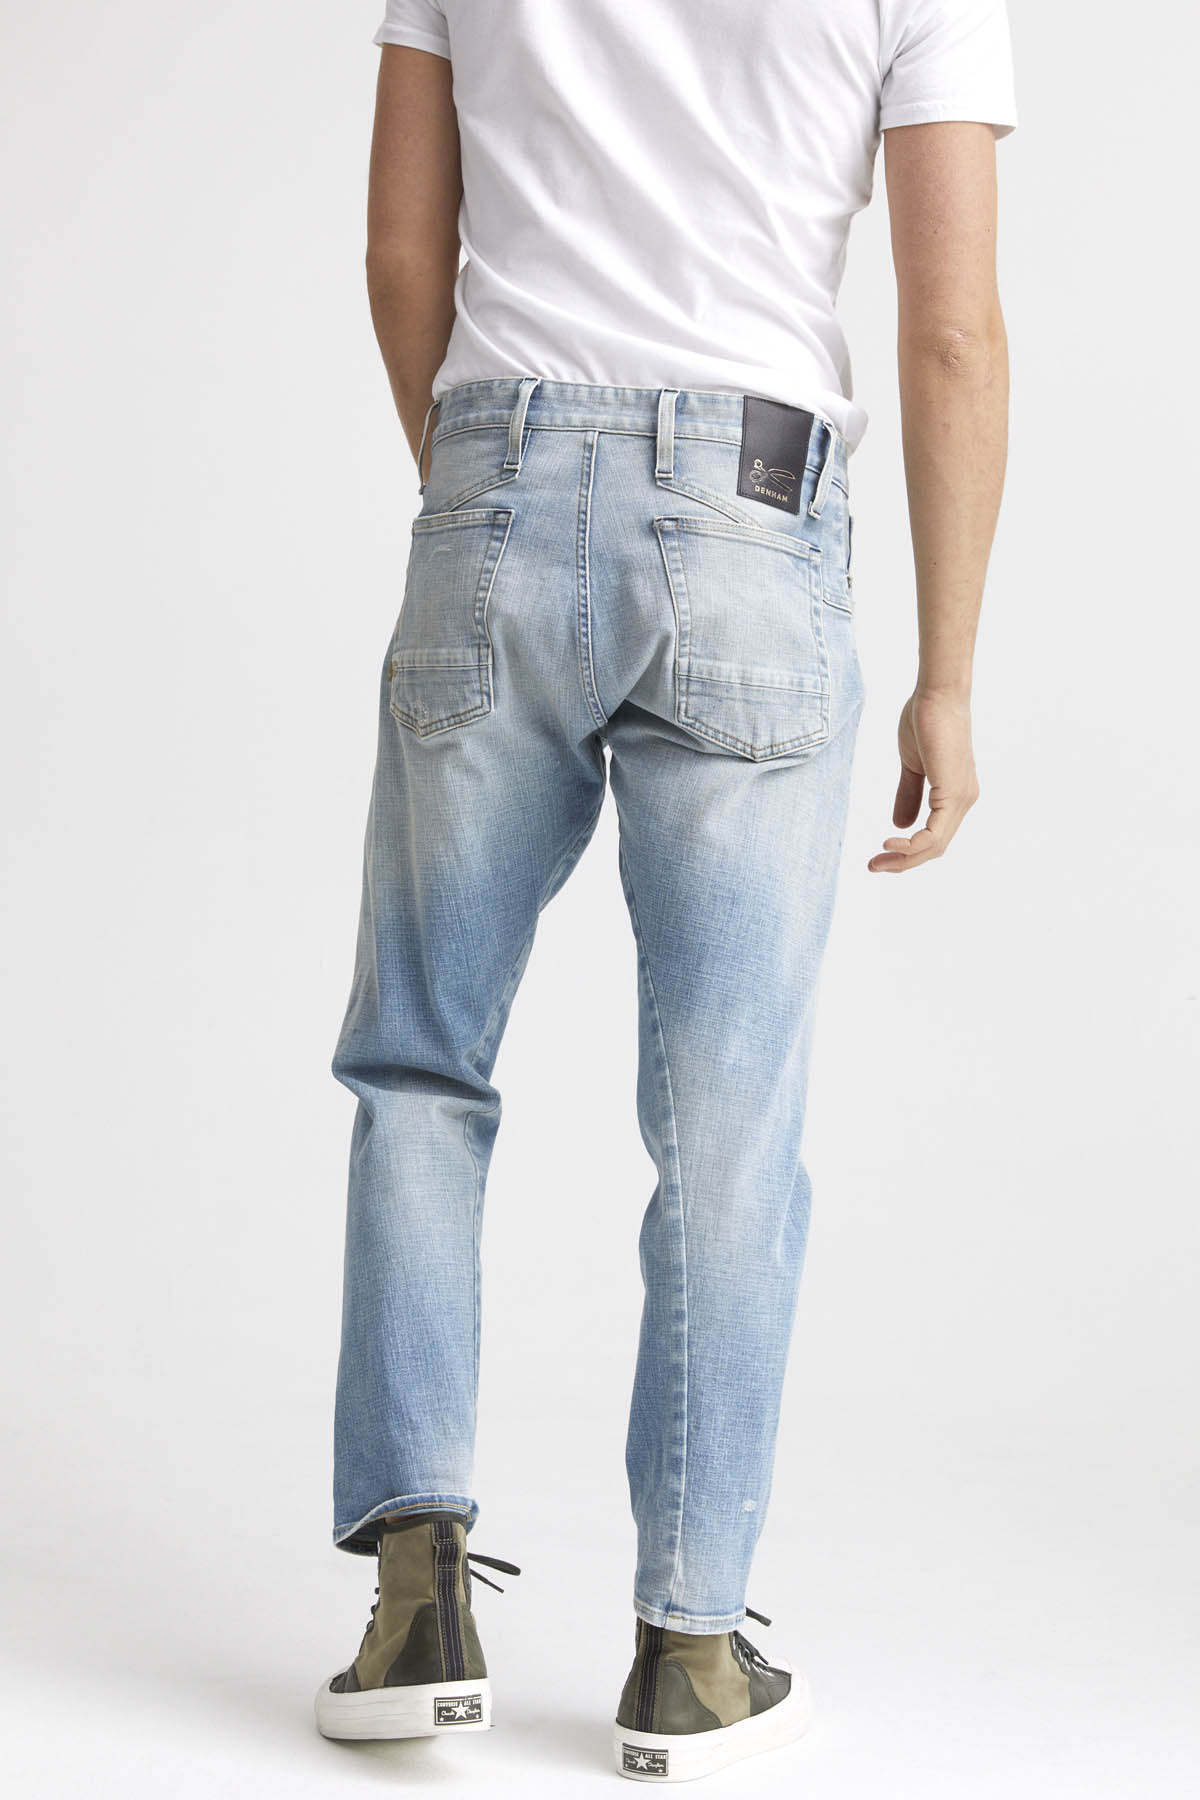 Kinetic - Wide Tapered Fit Jeans - Detail